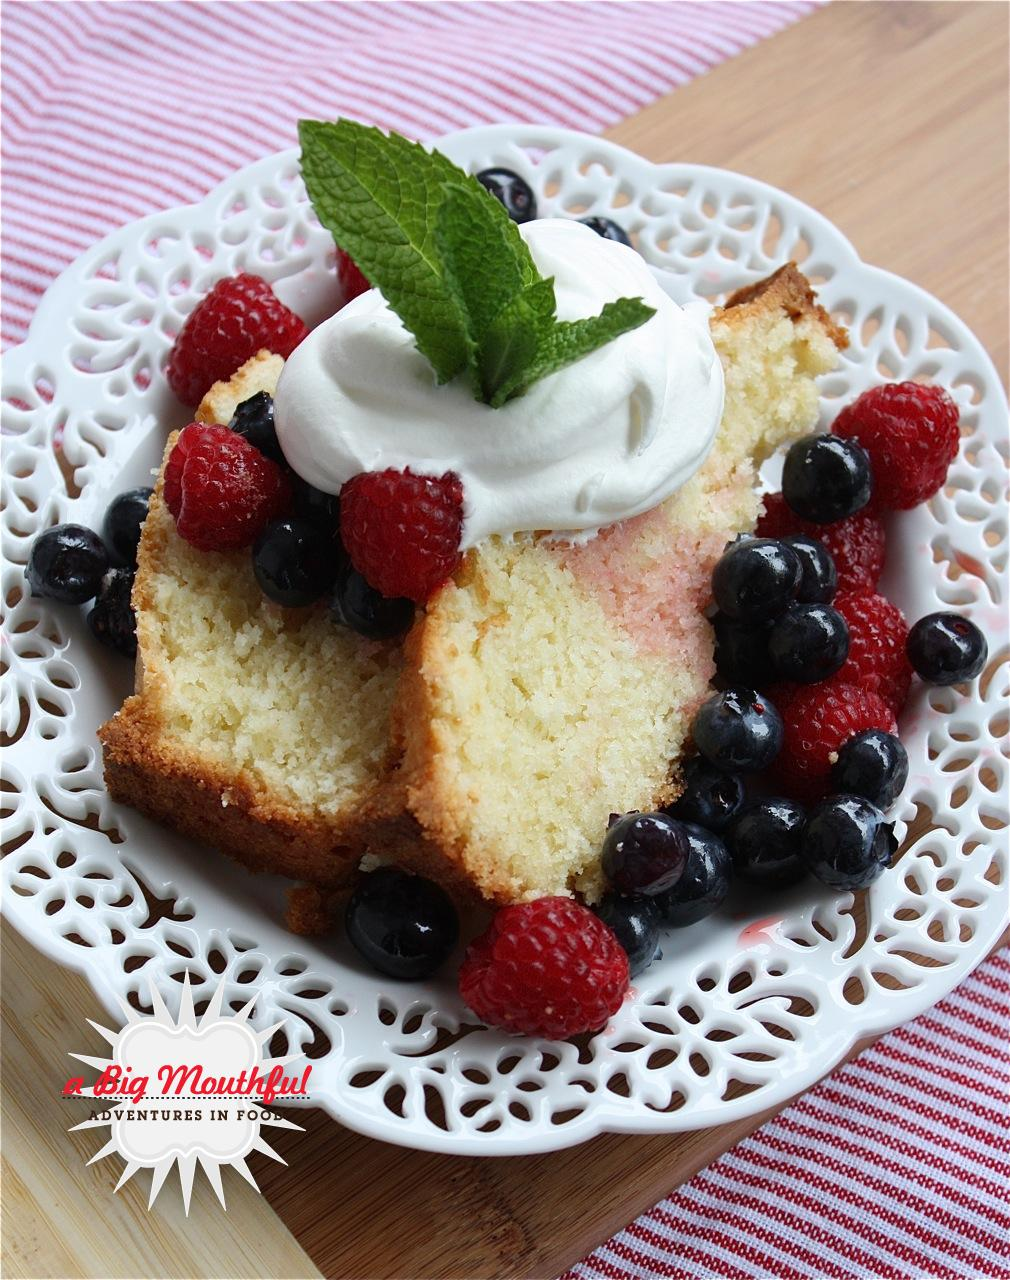 Dorie Greenspan's Perfection Pound Cake Topped with Summer Berries